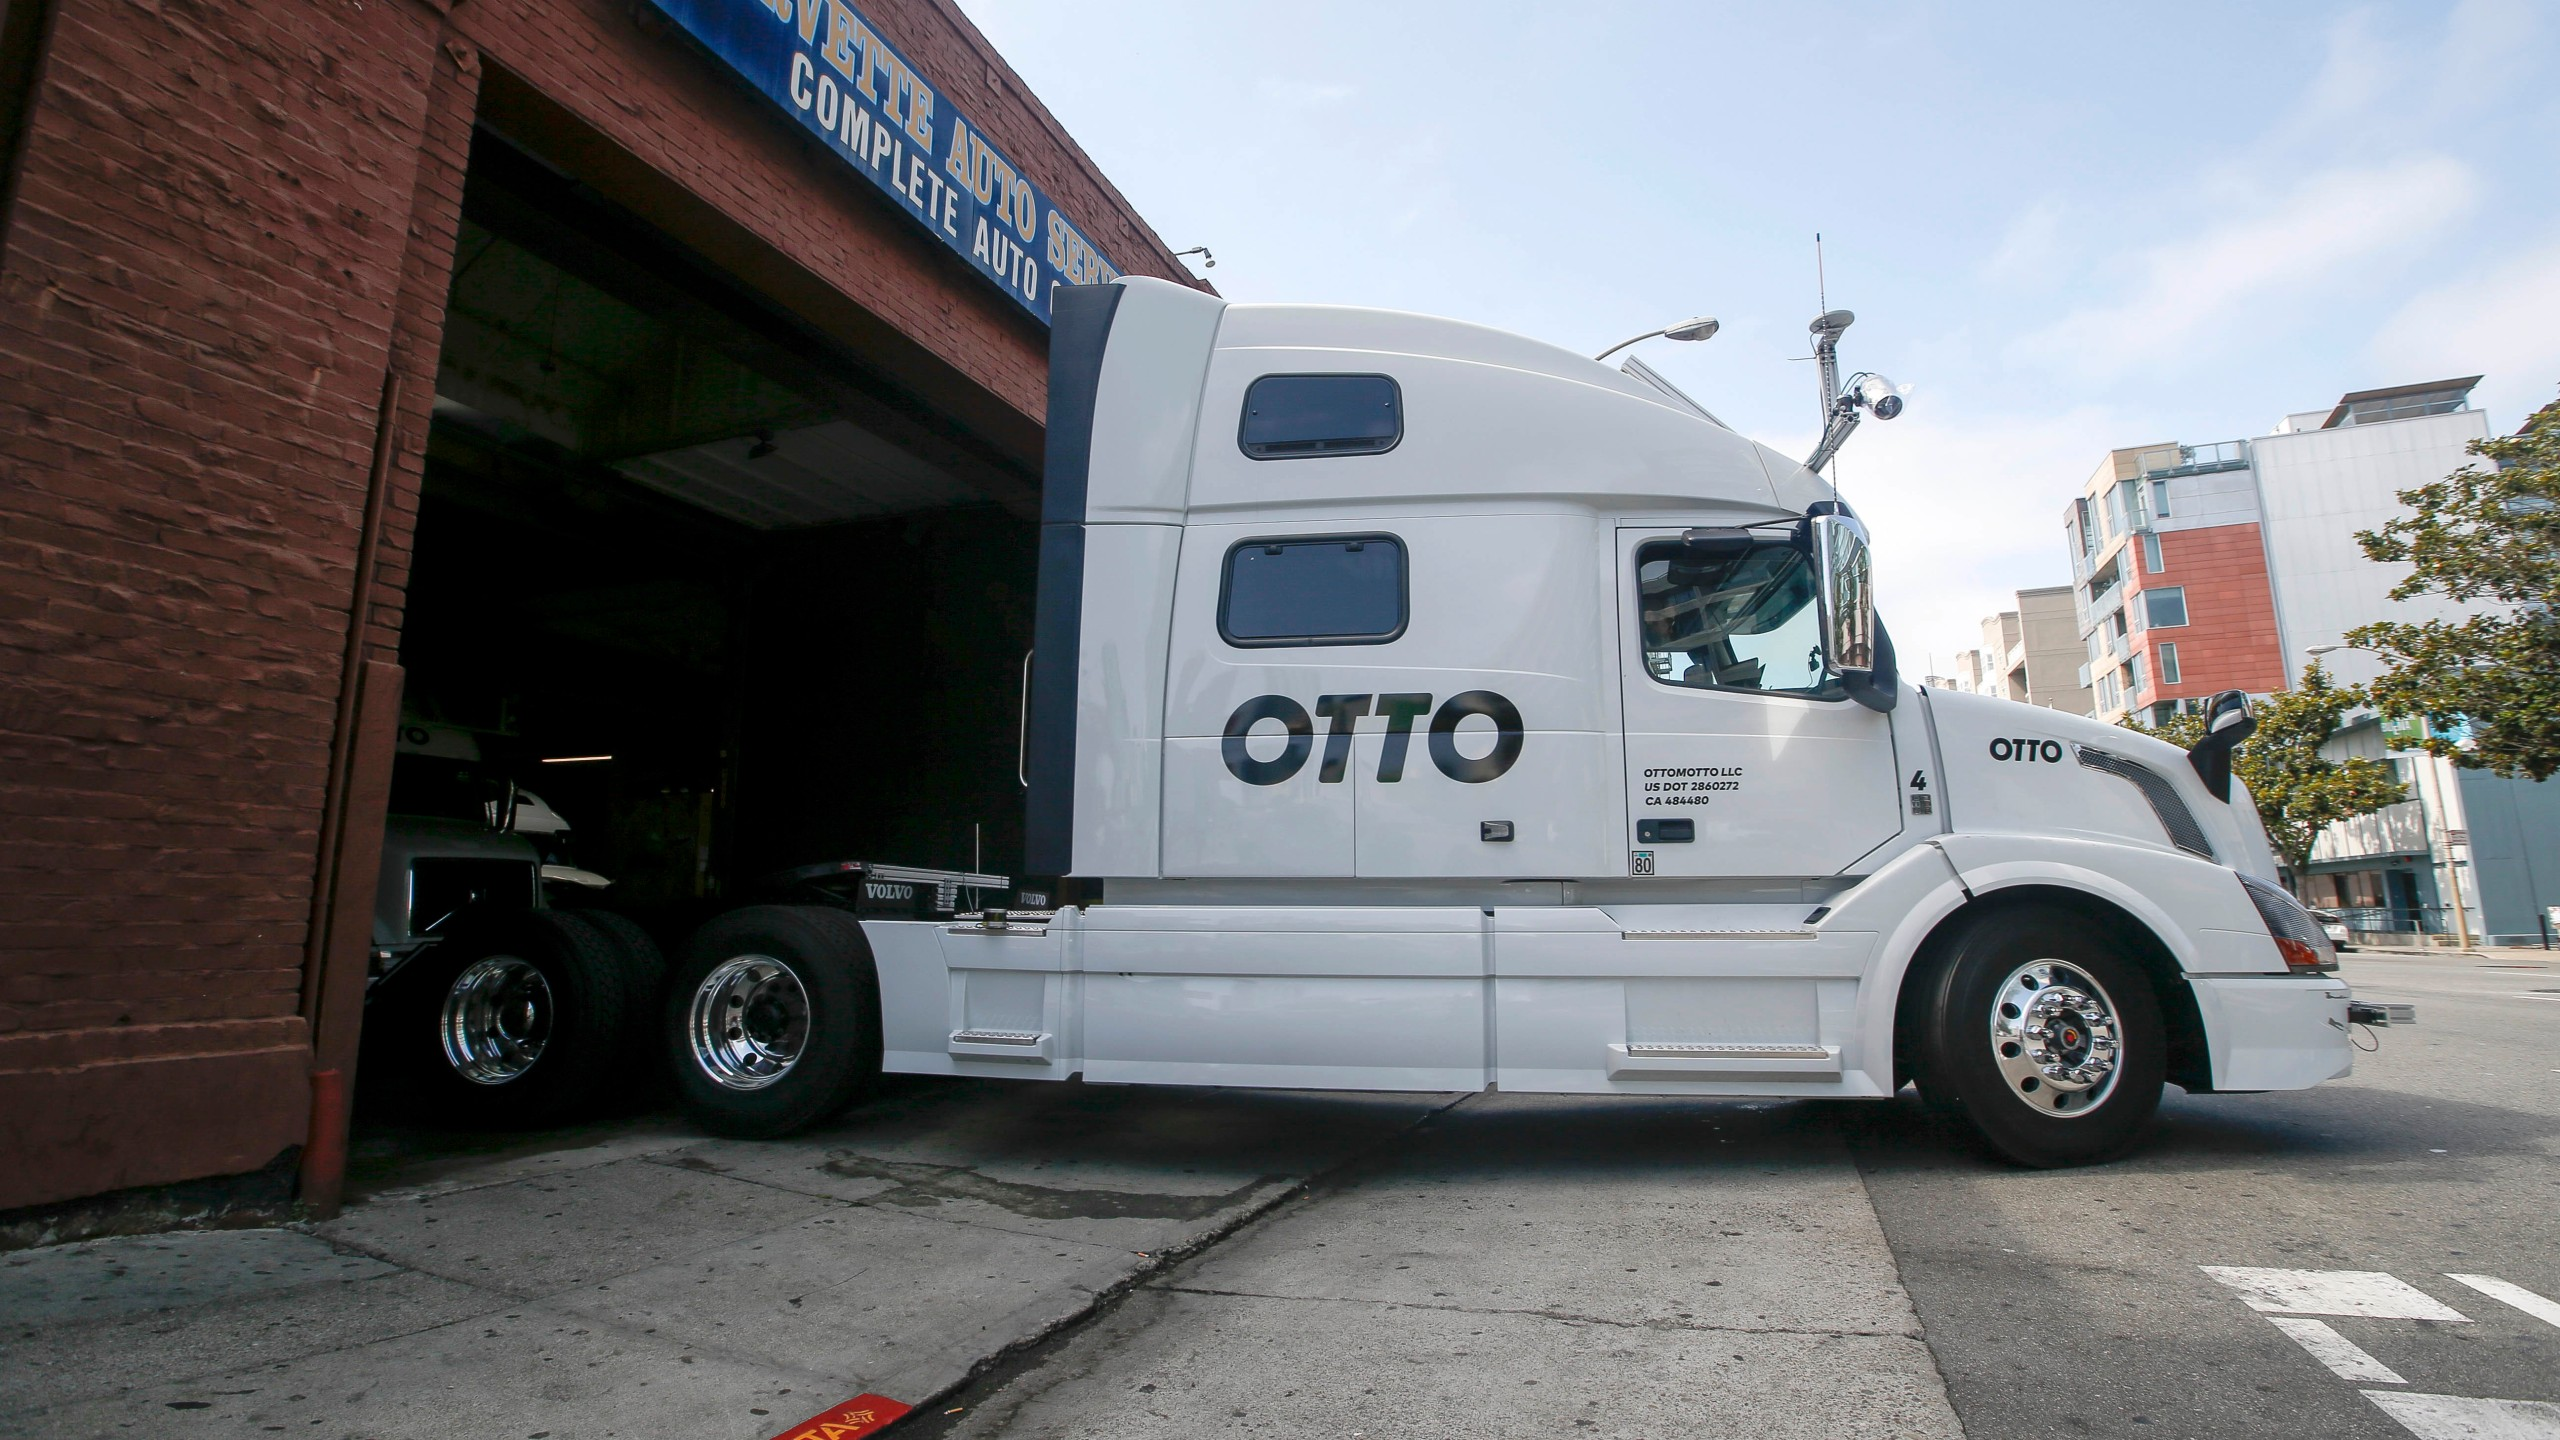 FILE PHOTO Otto Self Driving Truck Photo by Tony Avelar, AP Photo_233494